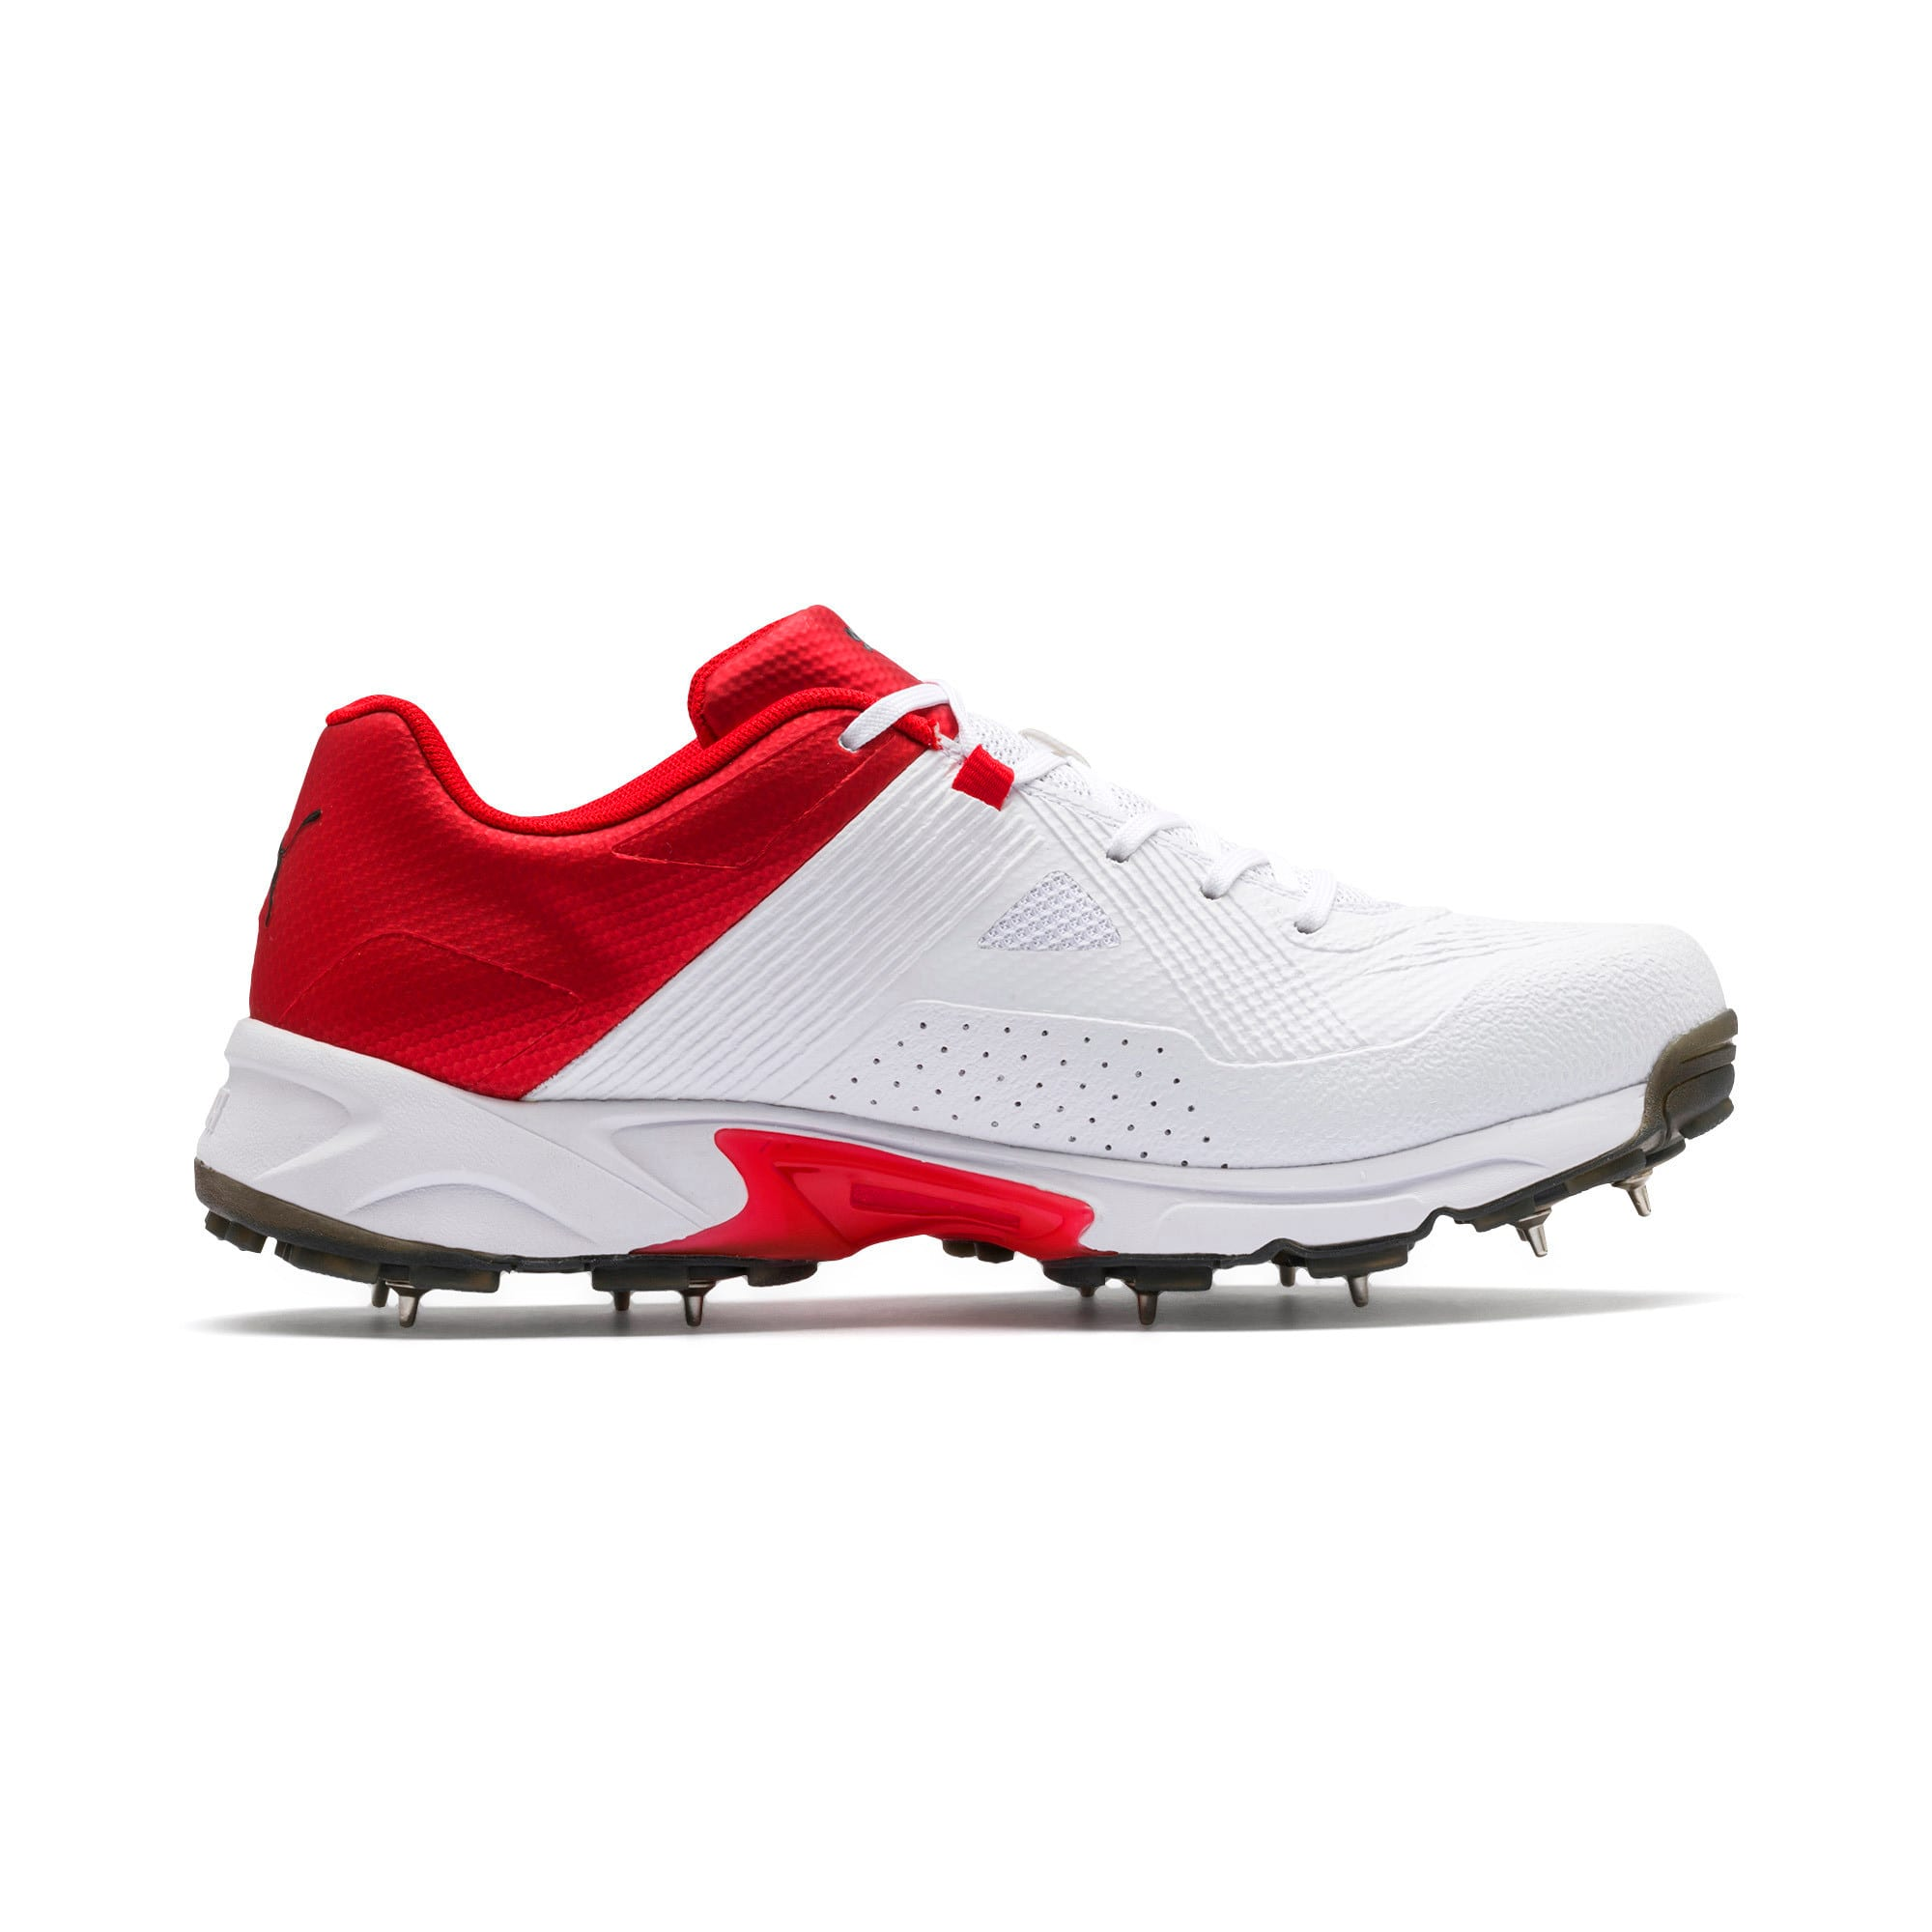 Thumbnail 5 of PUMA Spike 19.1 Men's Cricket Shoes, White-Black-High Risk Red, medium-IND